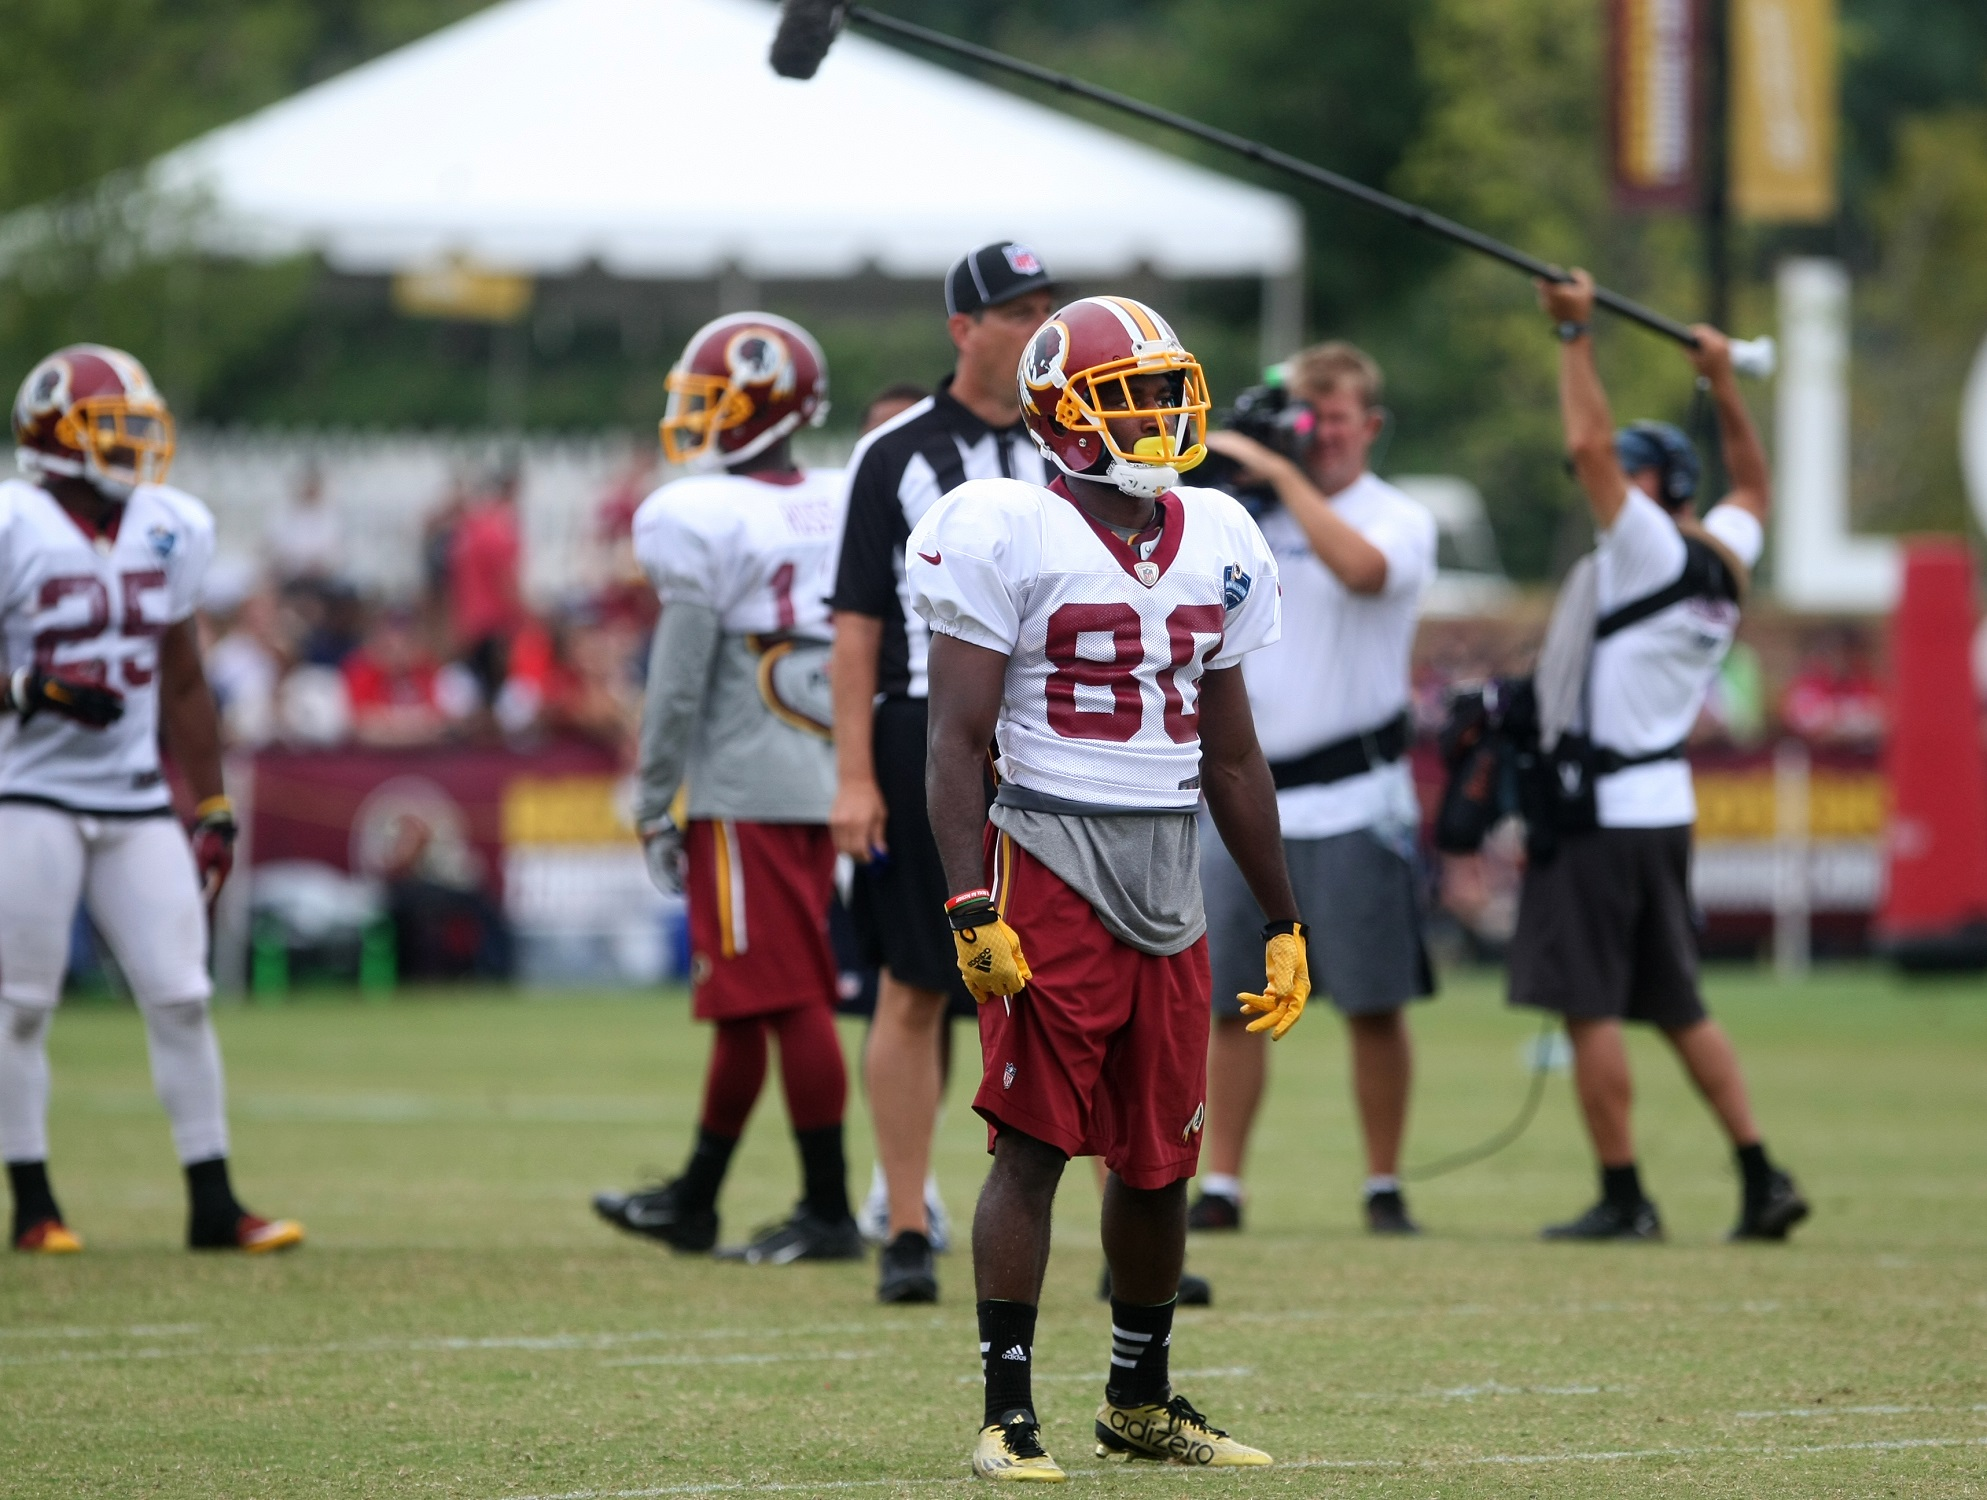 In the dog days of training camp, players ready to get back home